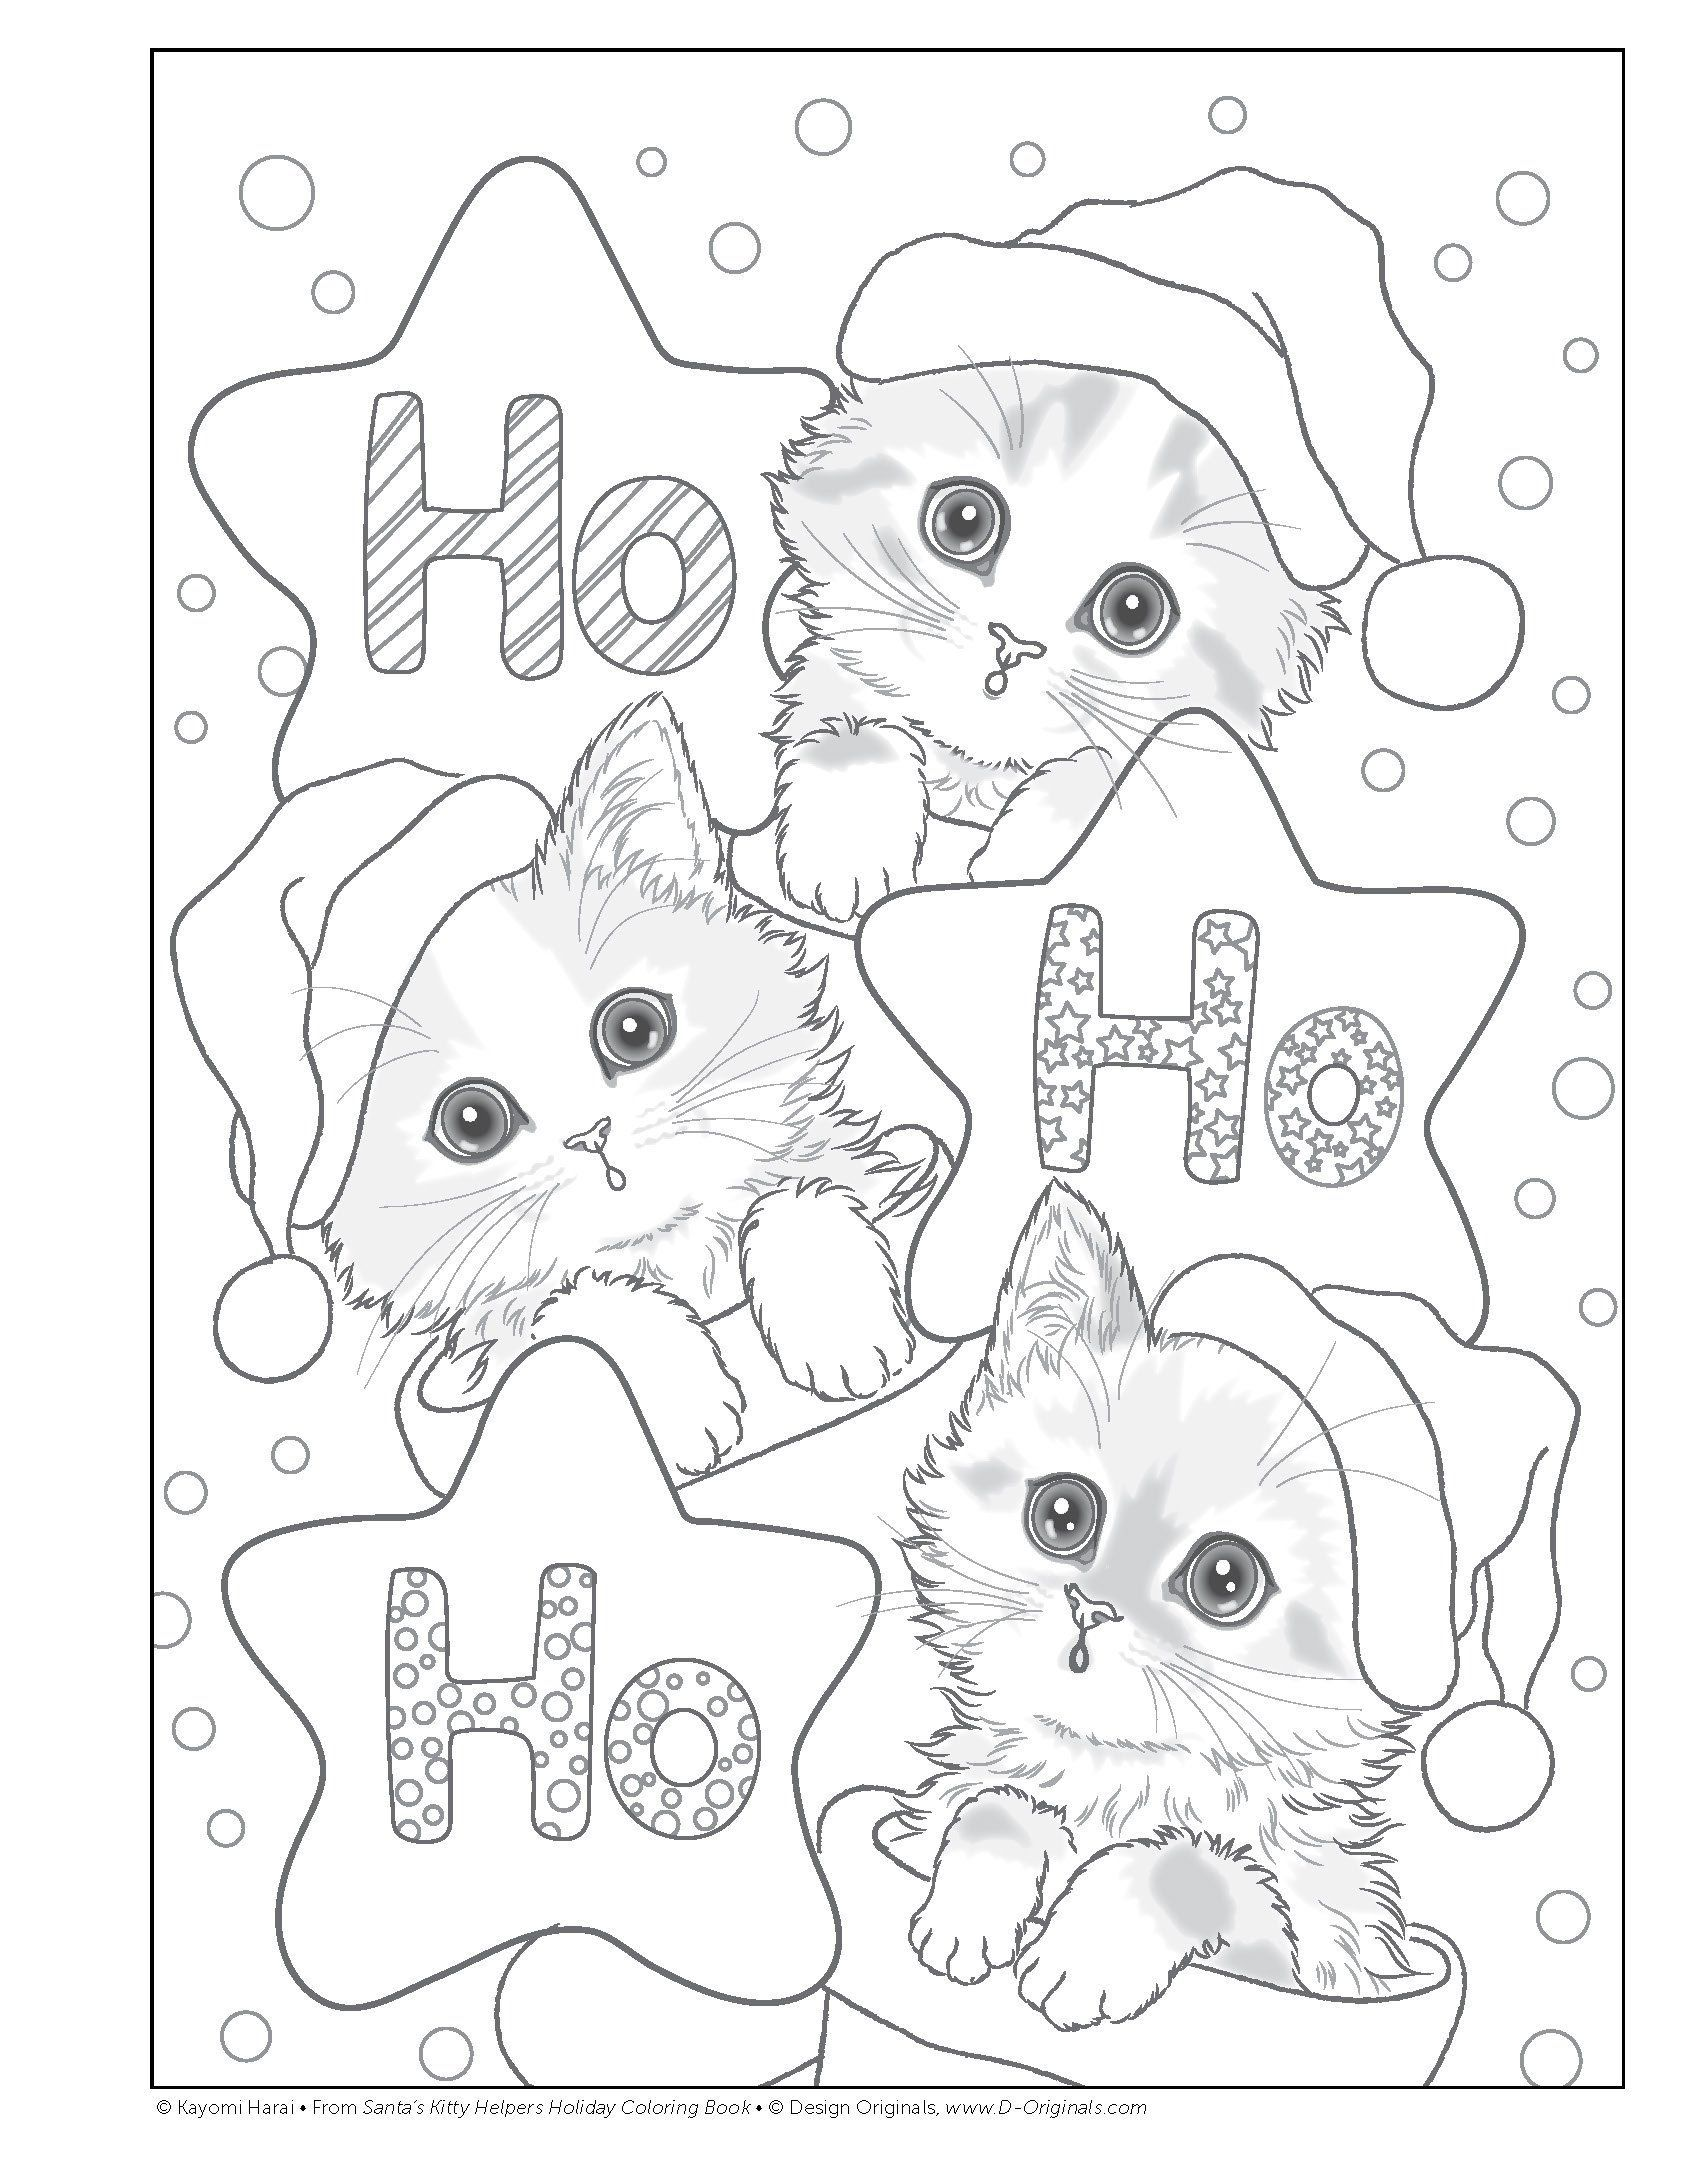 Pin By Husemandianne On Coloring Pages Holiday Coloring Book Cat Coloring Page Christmas Coloring Books